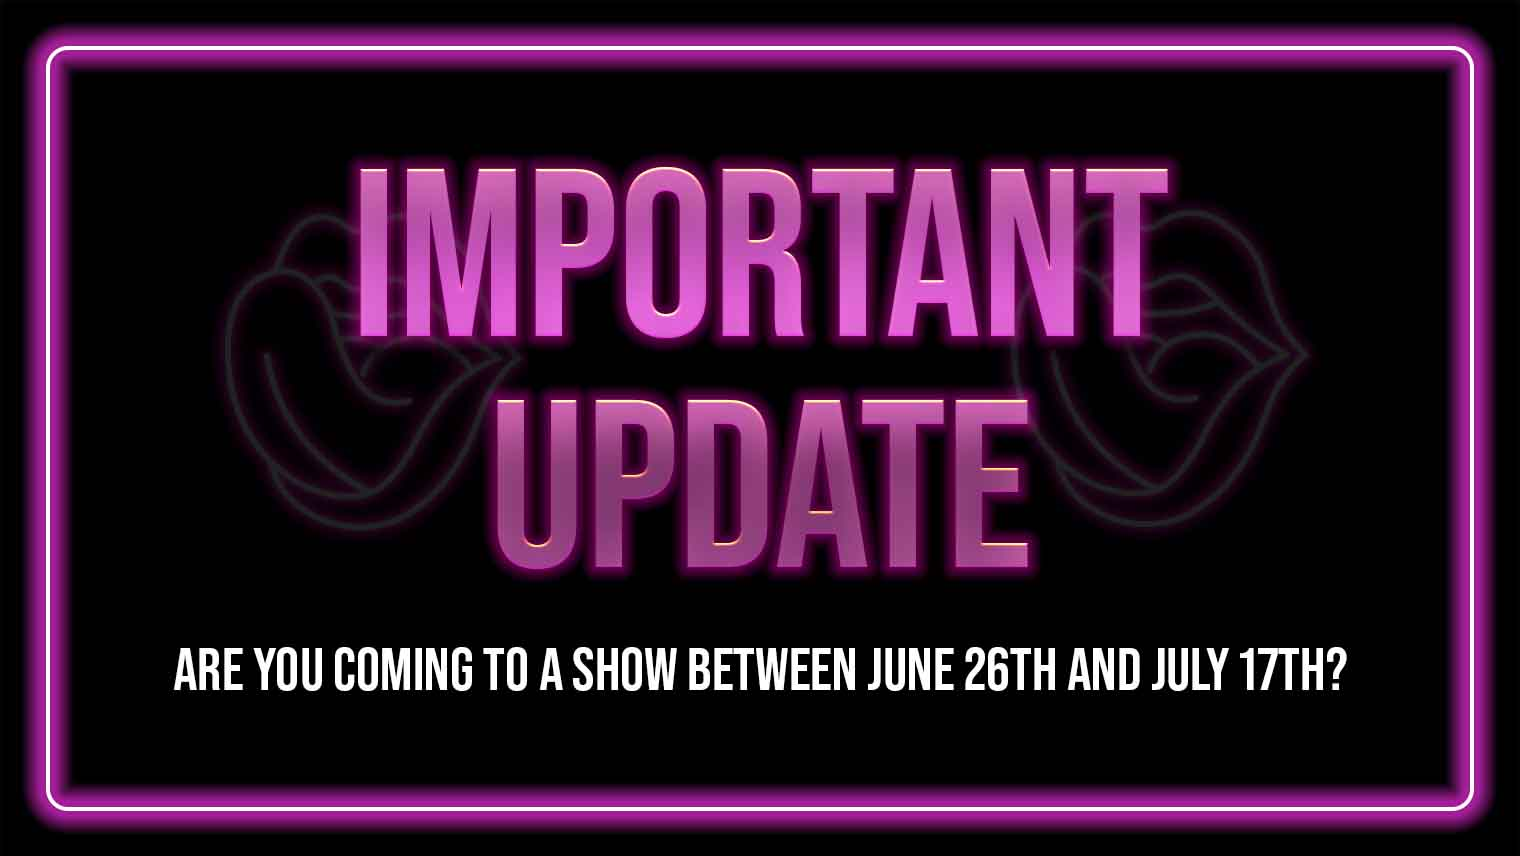 male strip show blog | Please read if you are coming to a show in the next four weeks!